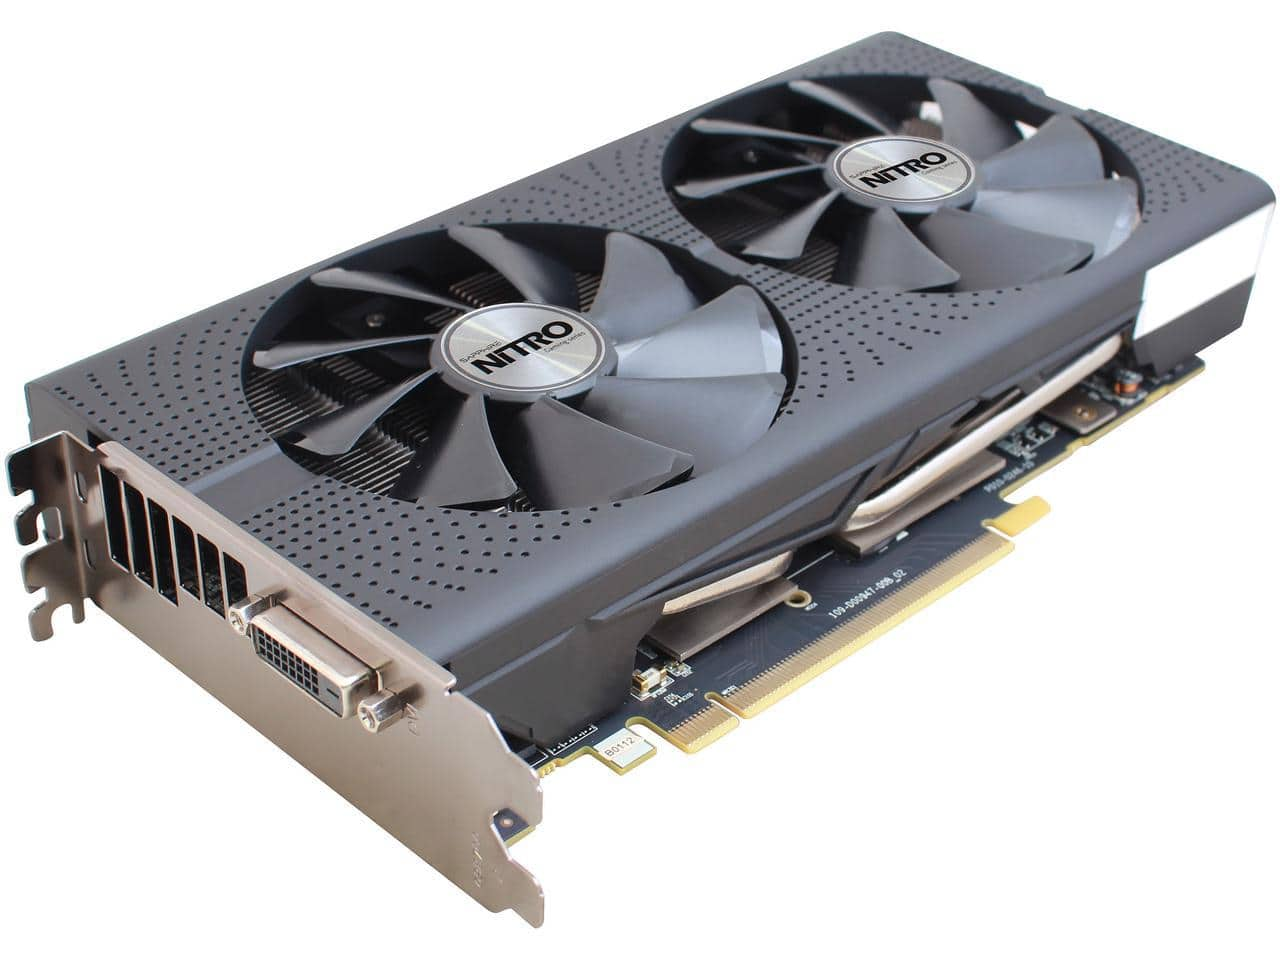 Mining RX 470 with Samsung Memory in stock for $264.98 at Newegg